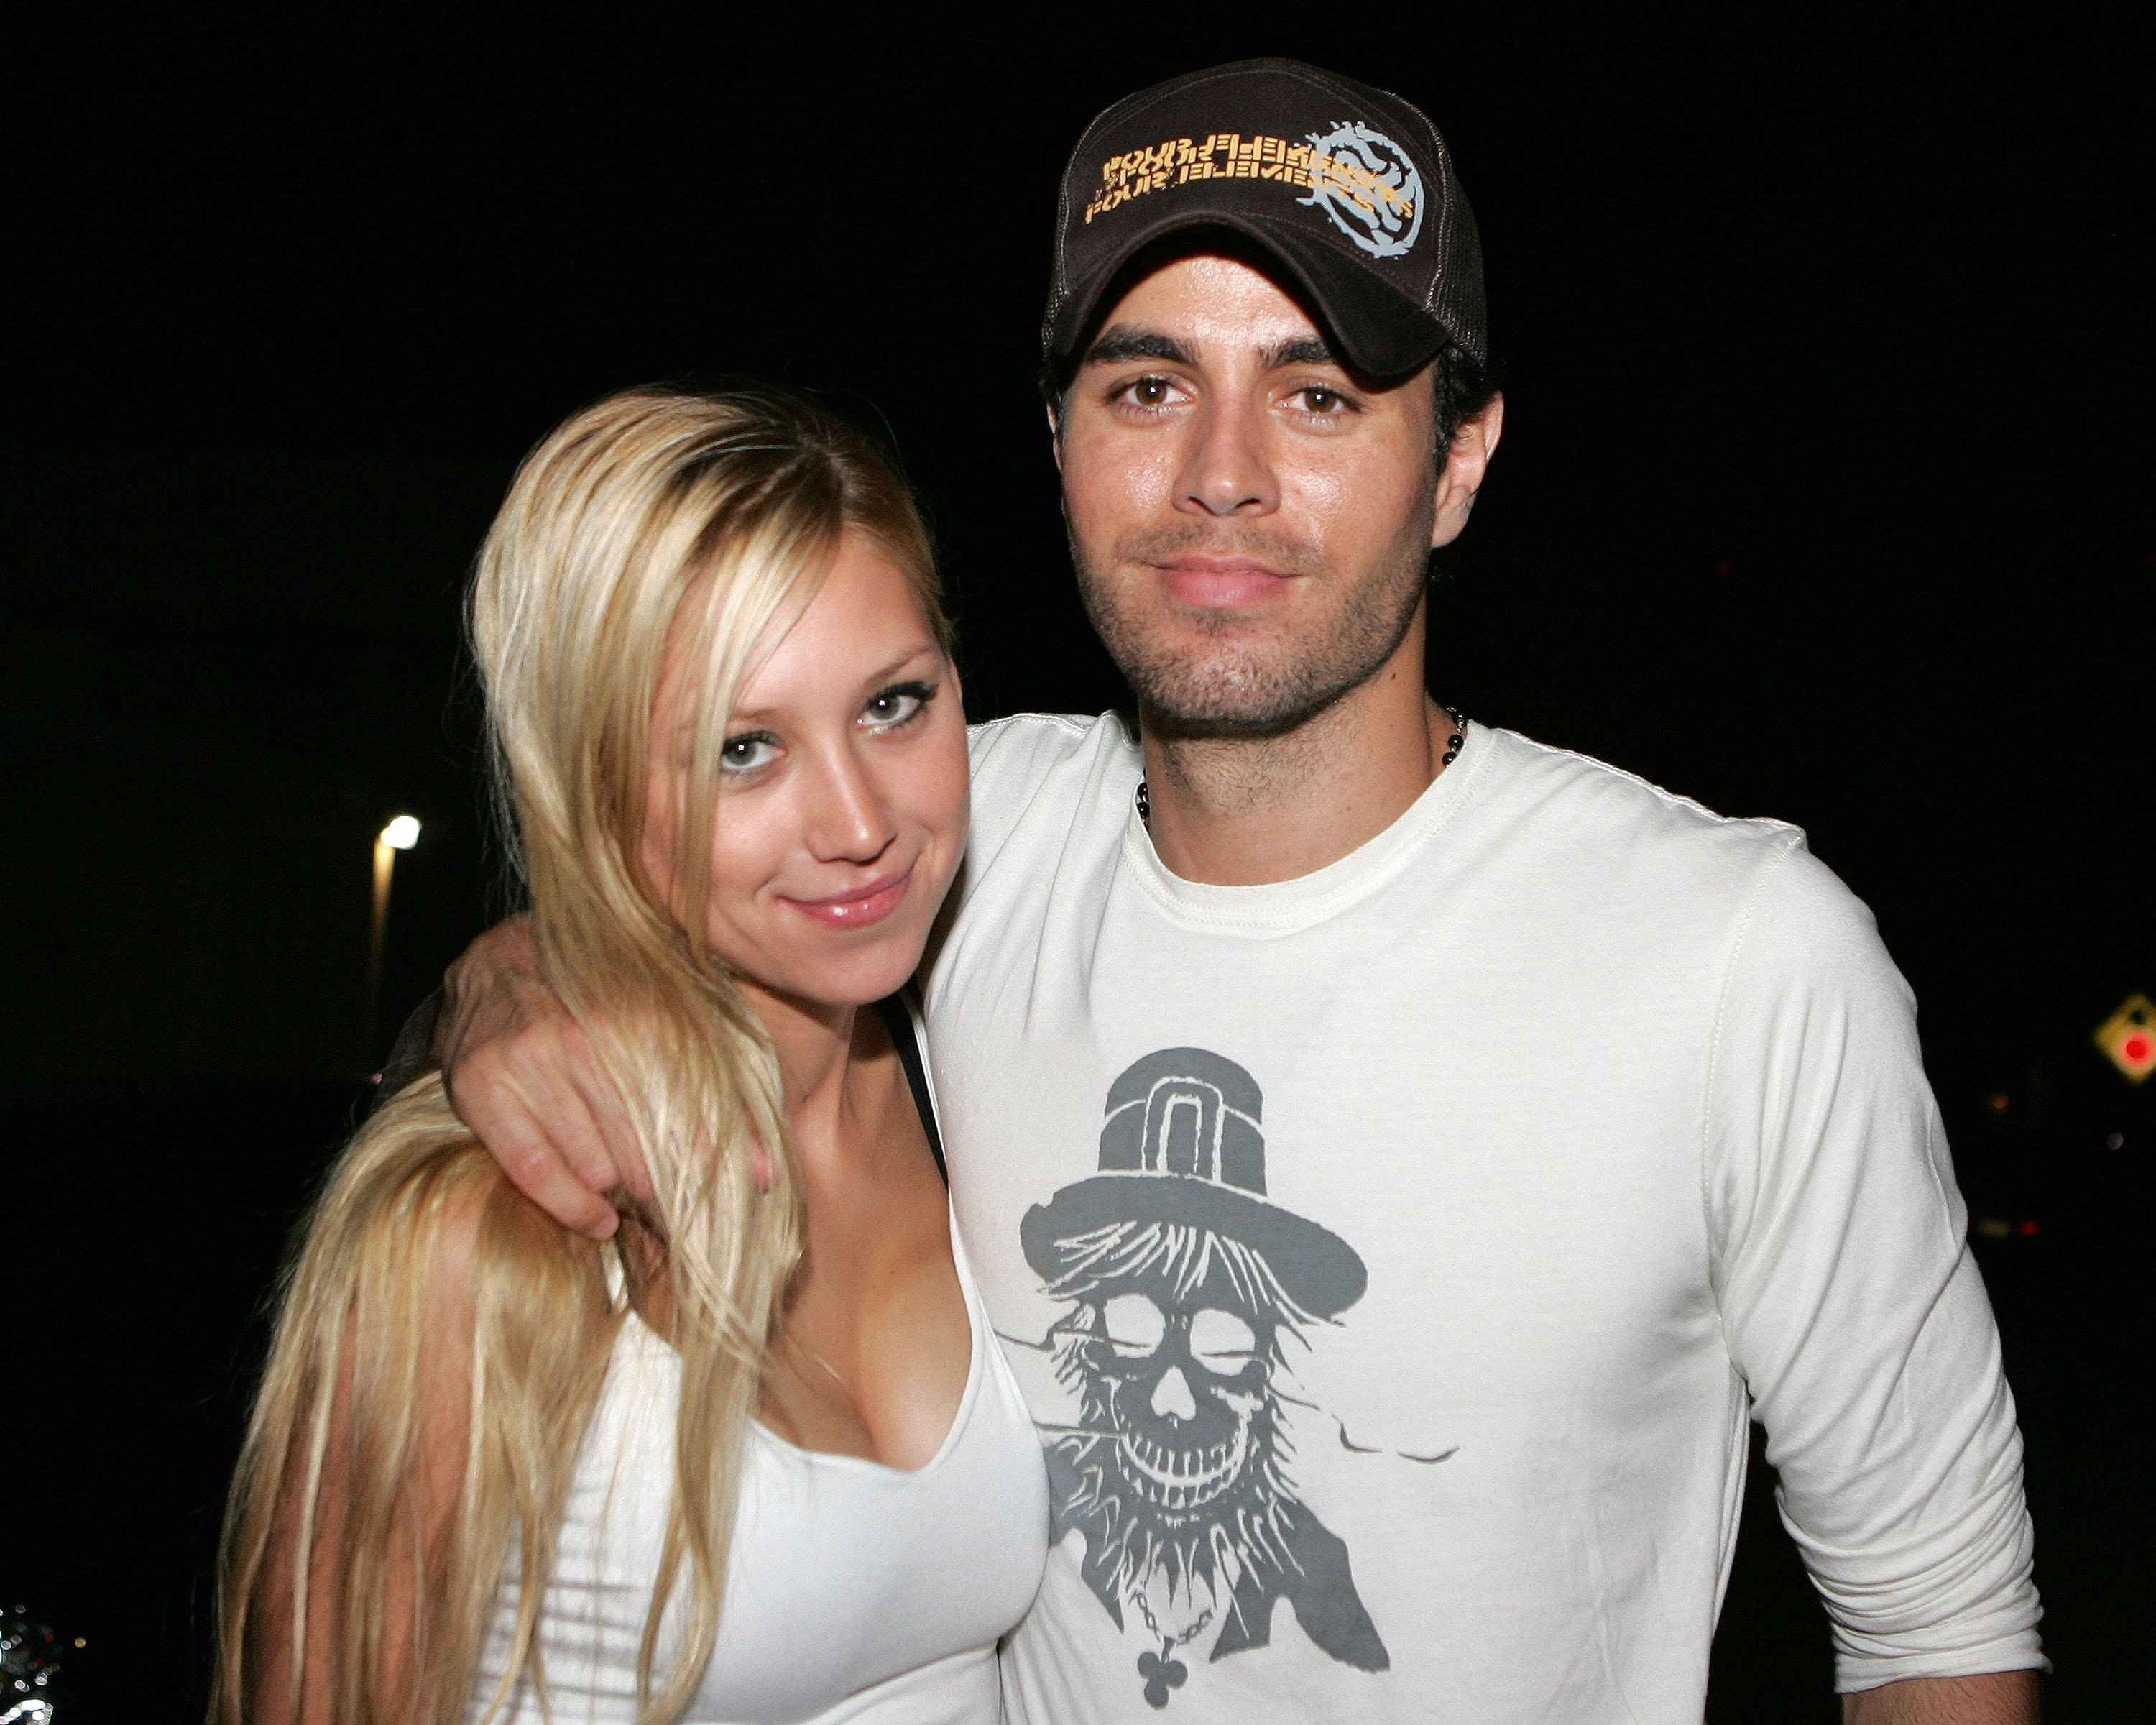 Anna Kournikova and Enrique Iglesias leaving the Big Pink restaurant. Source | Photo: Getty Images